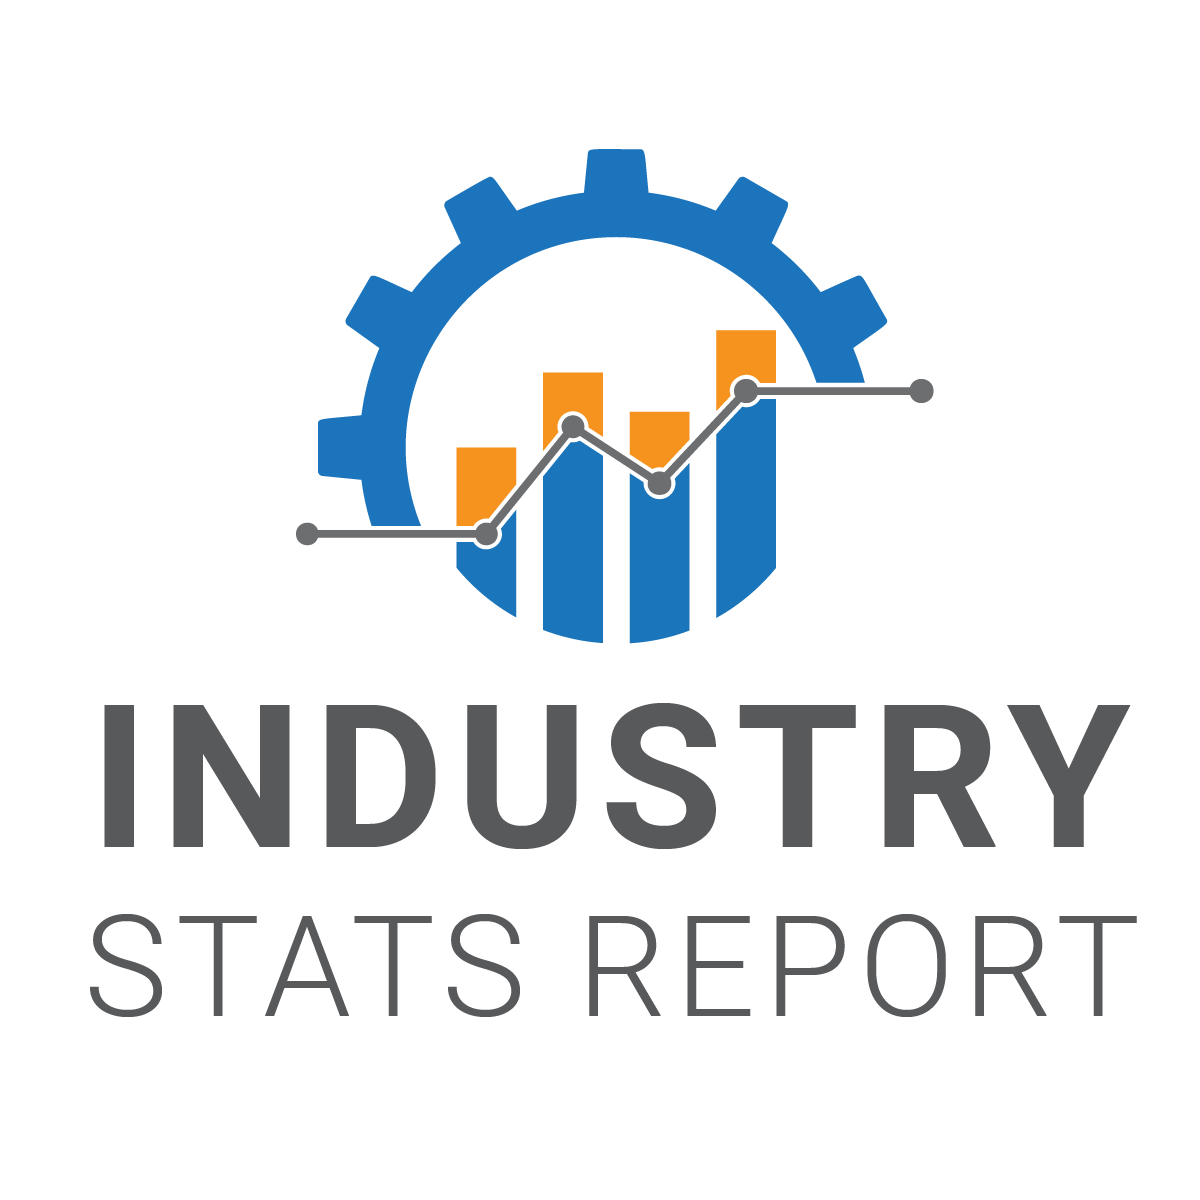 Industry Stats Report